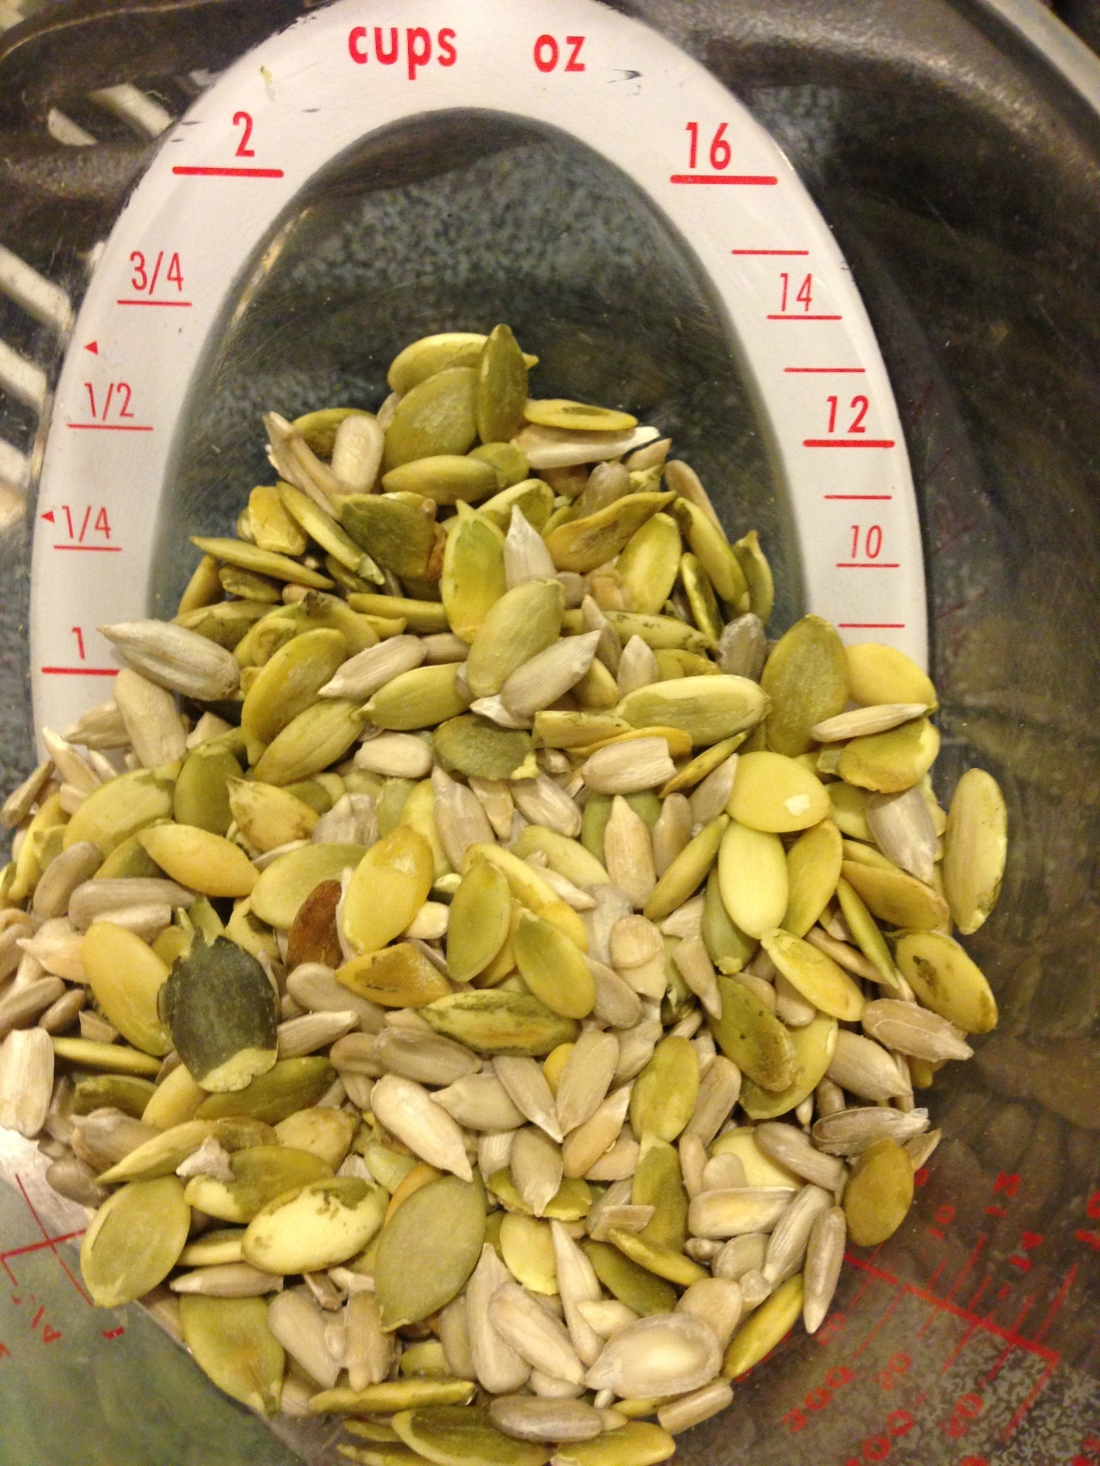 1/2 Cup Pumpkin, 1/2 Cup Sunflower Seeds